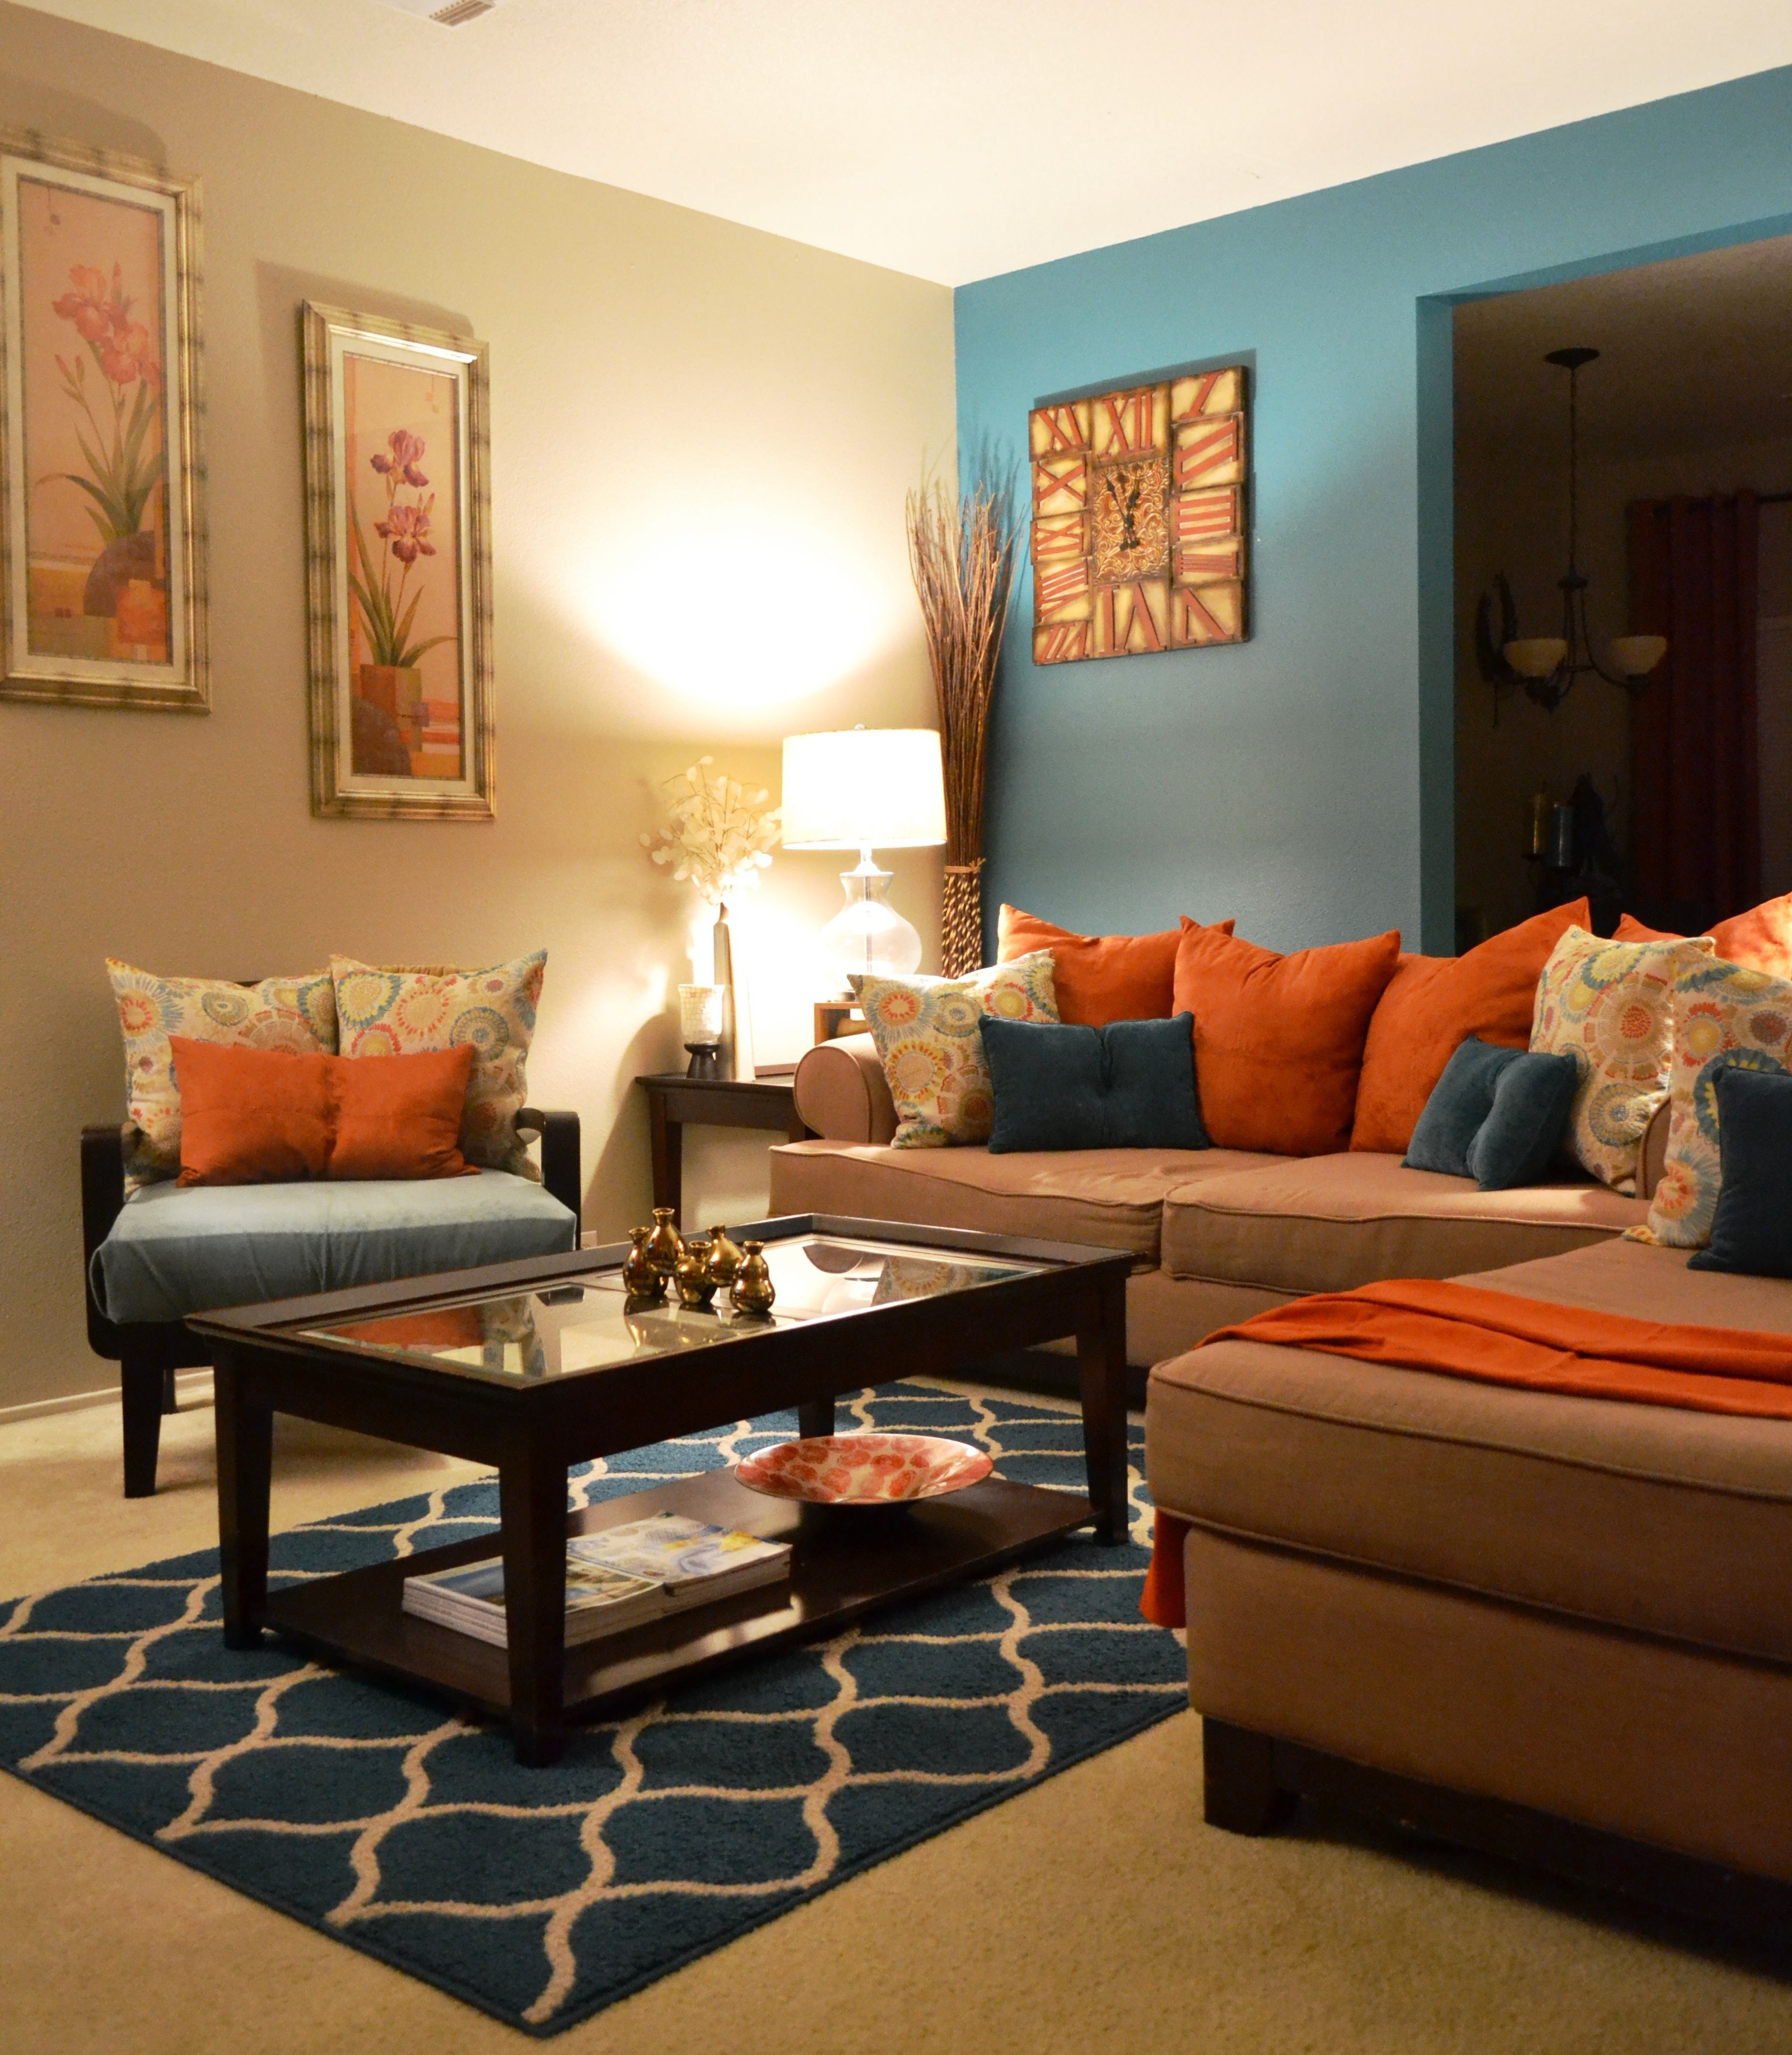 Rugs Coffee Table Pillows Teal Orange Living Room Behr Paint